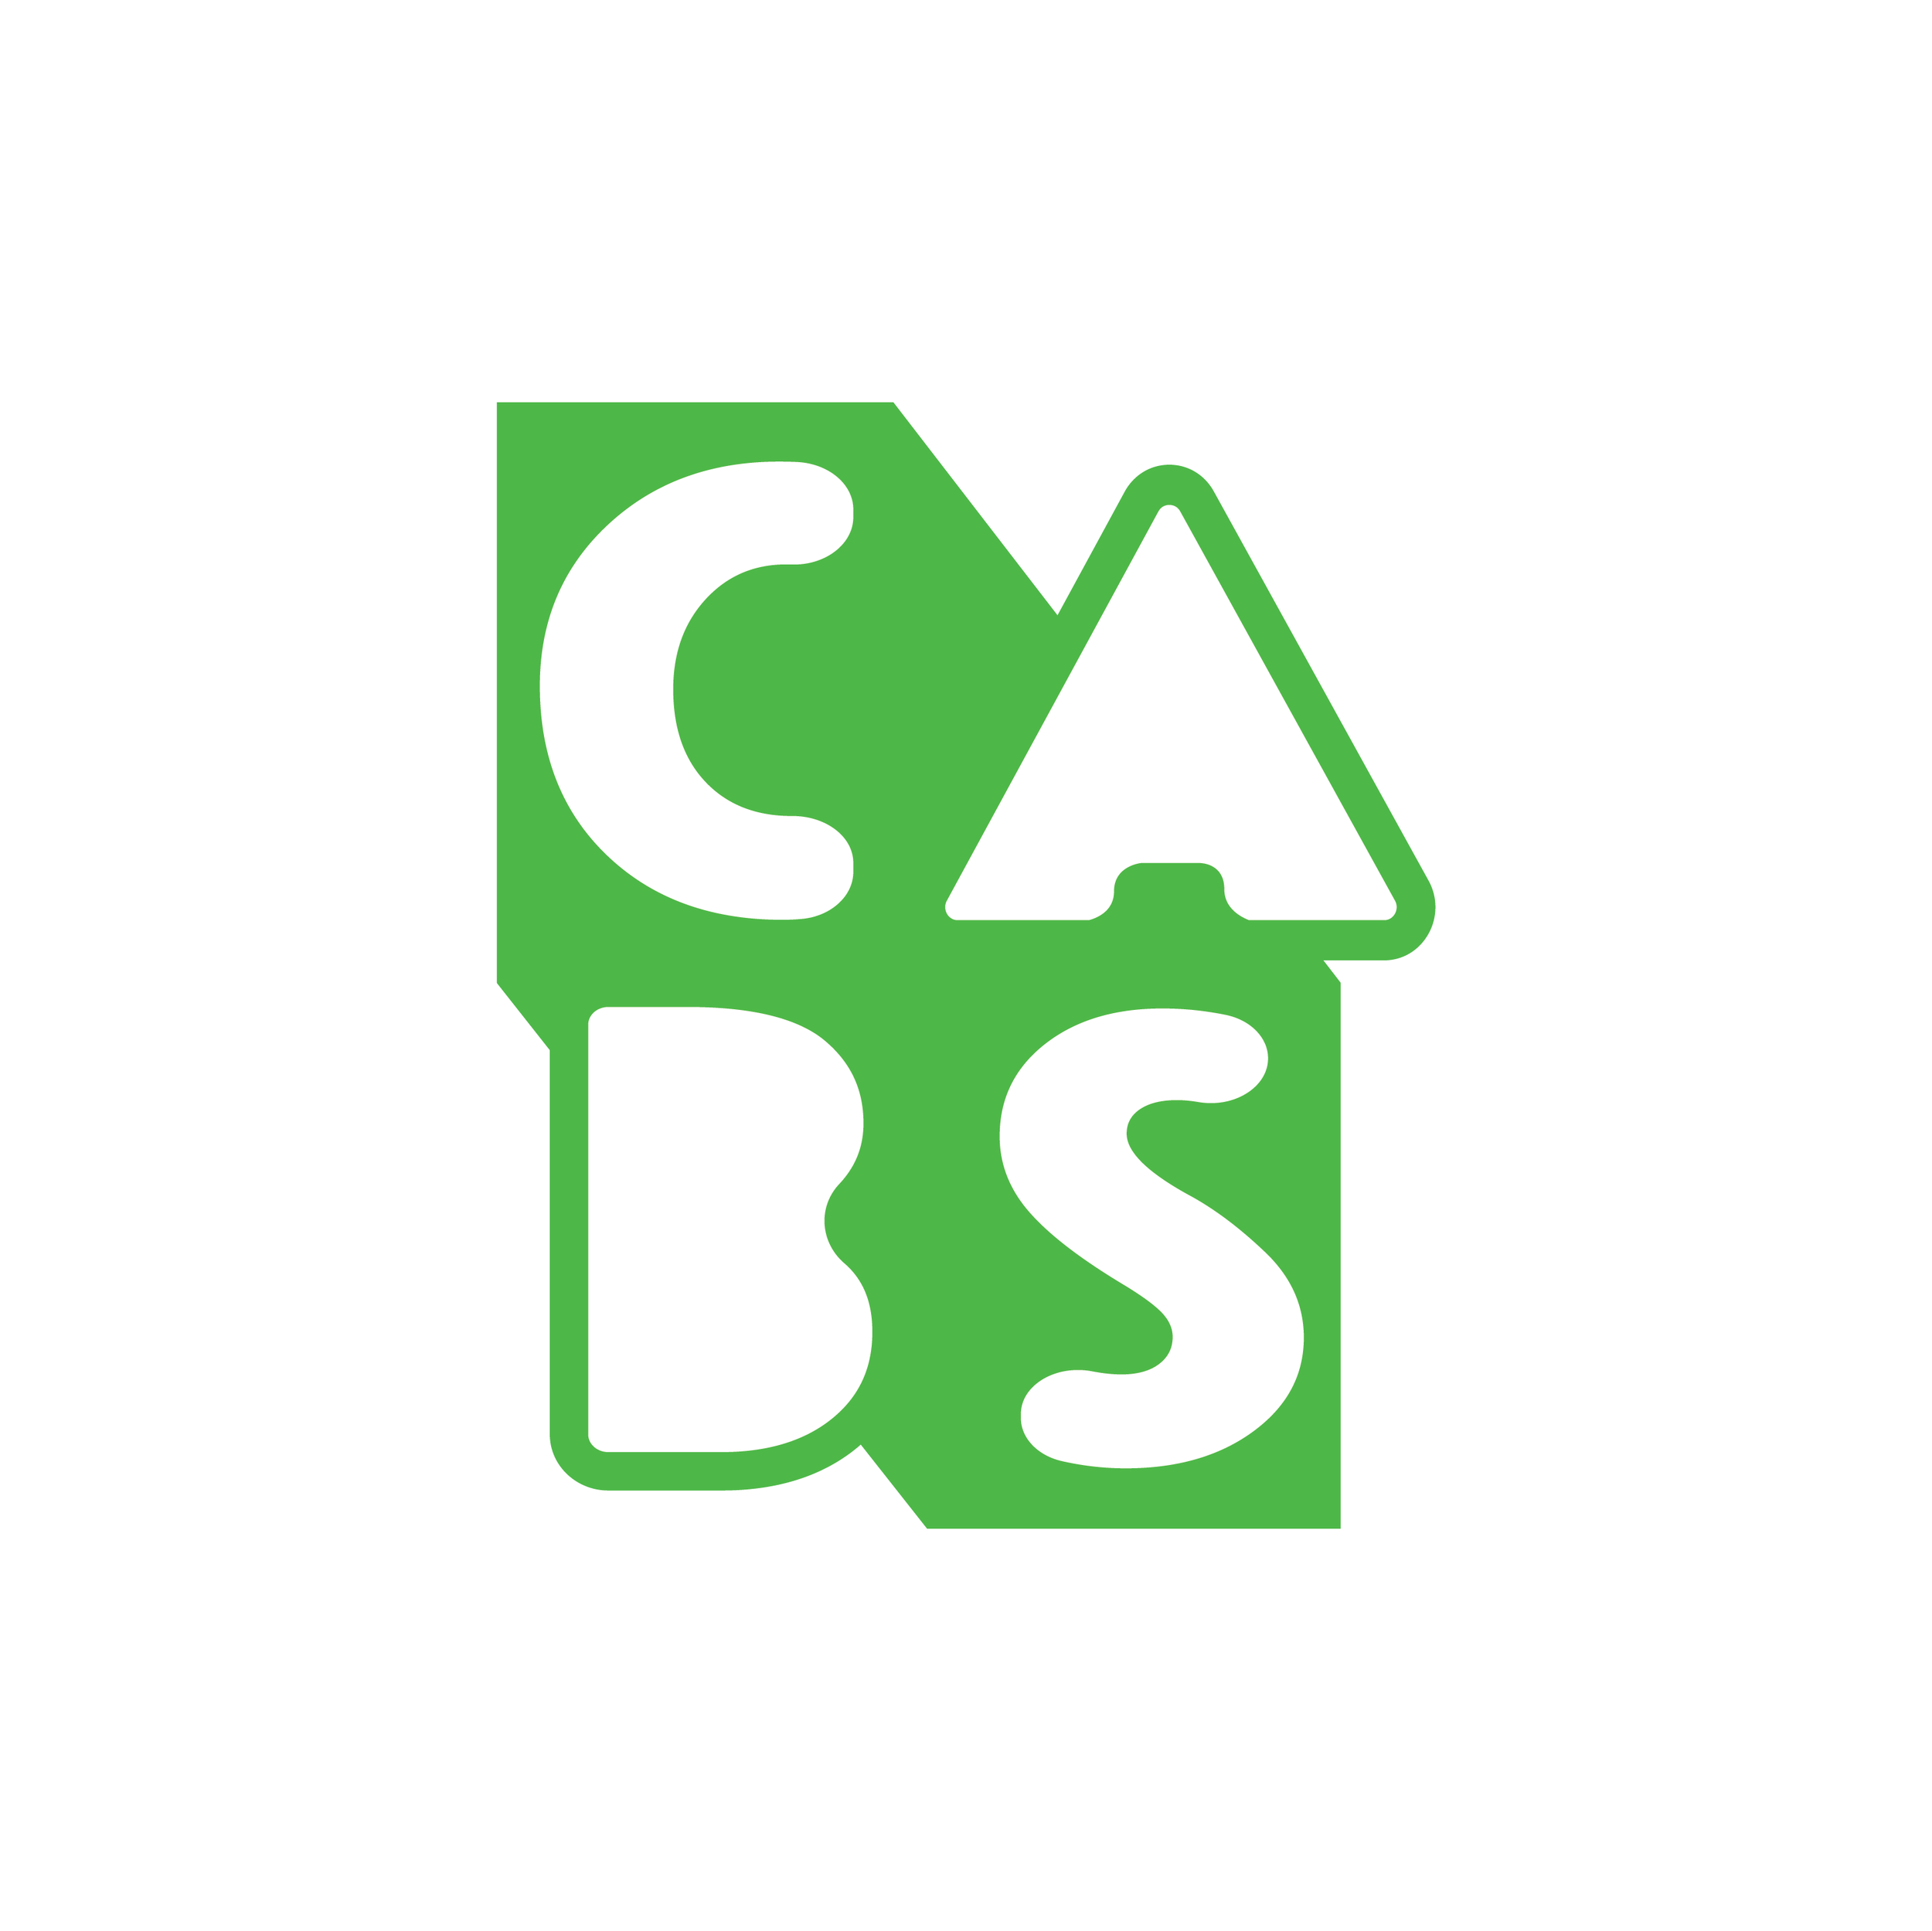 CABS-03.png